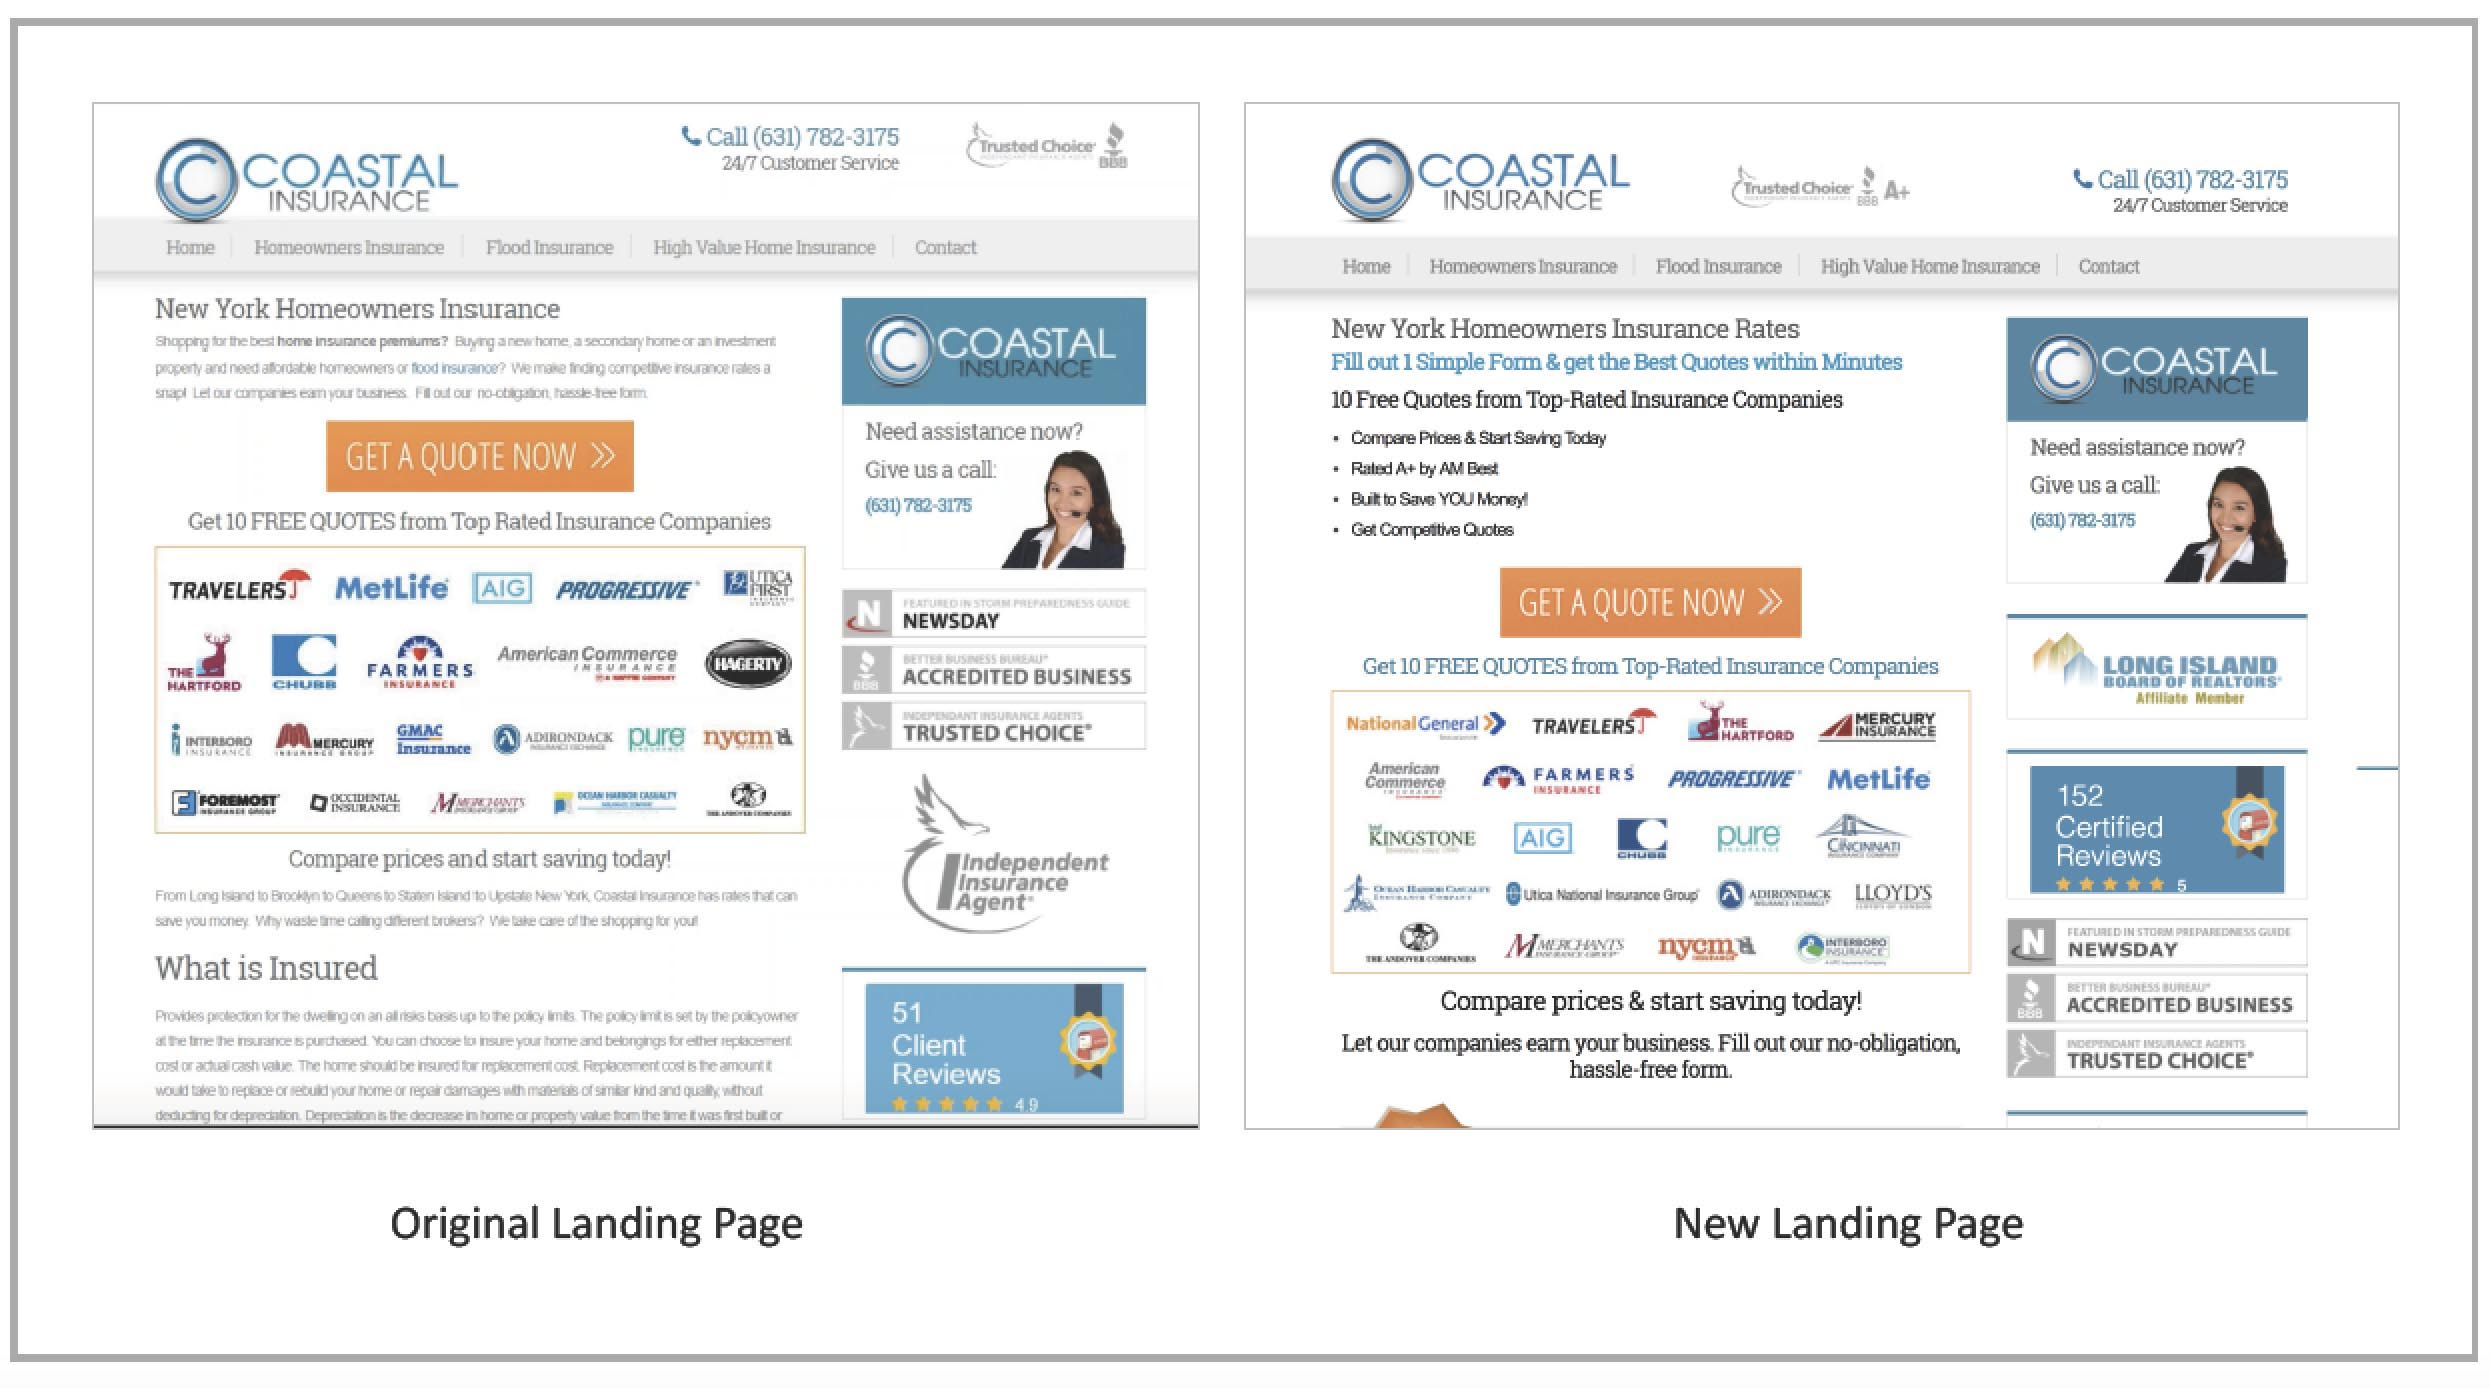 coastal-insurance-original-vs-new-landing-page